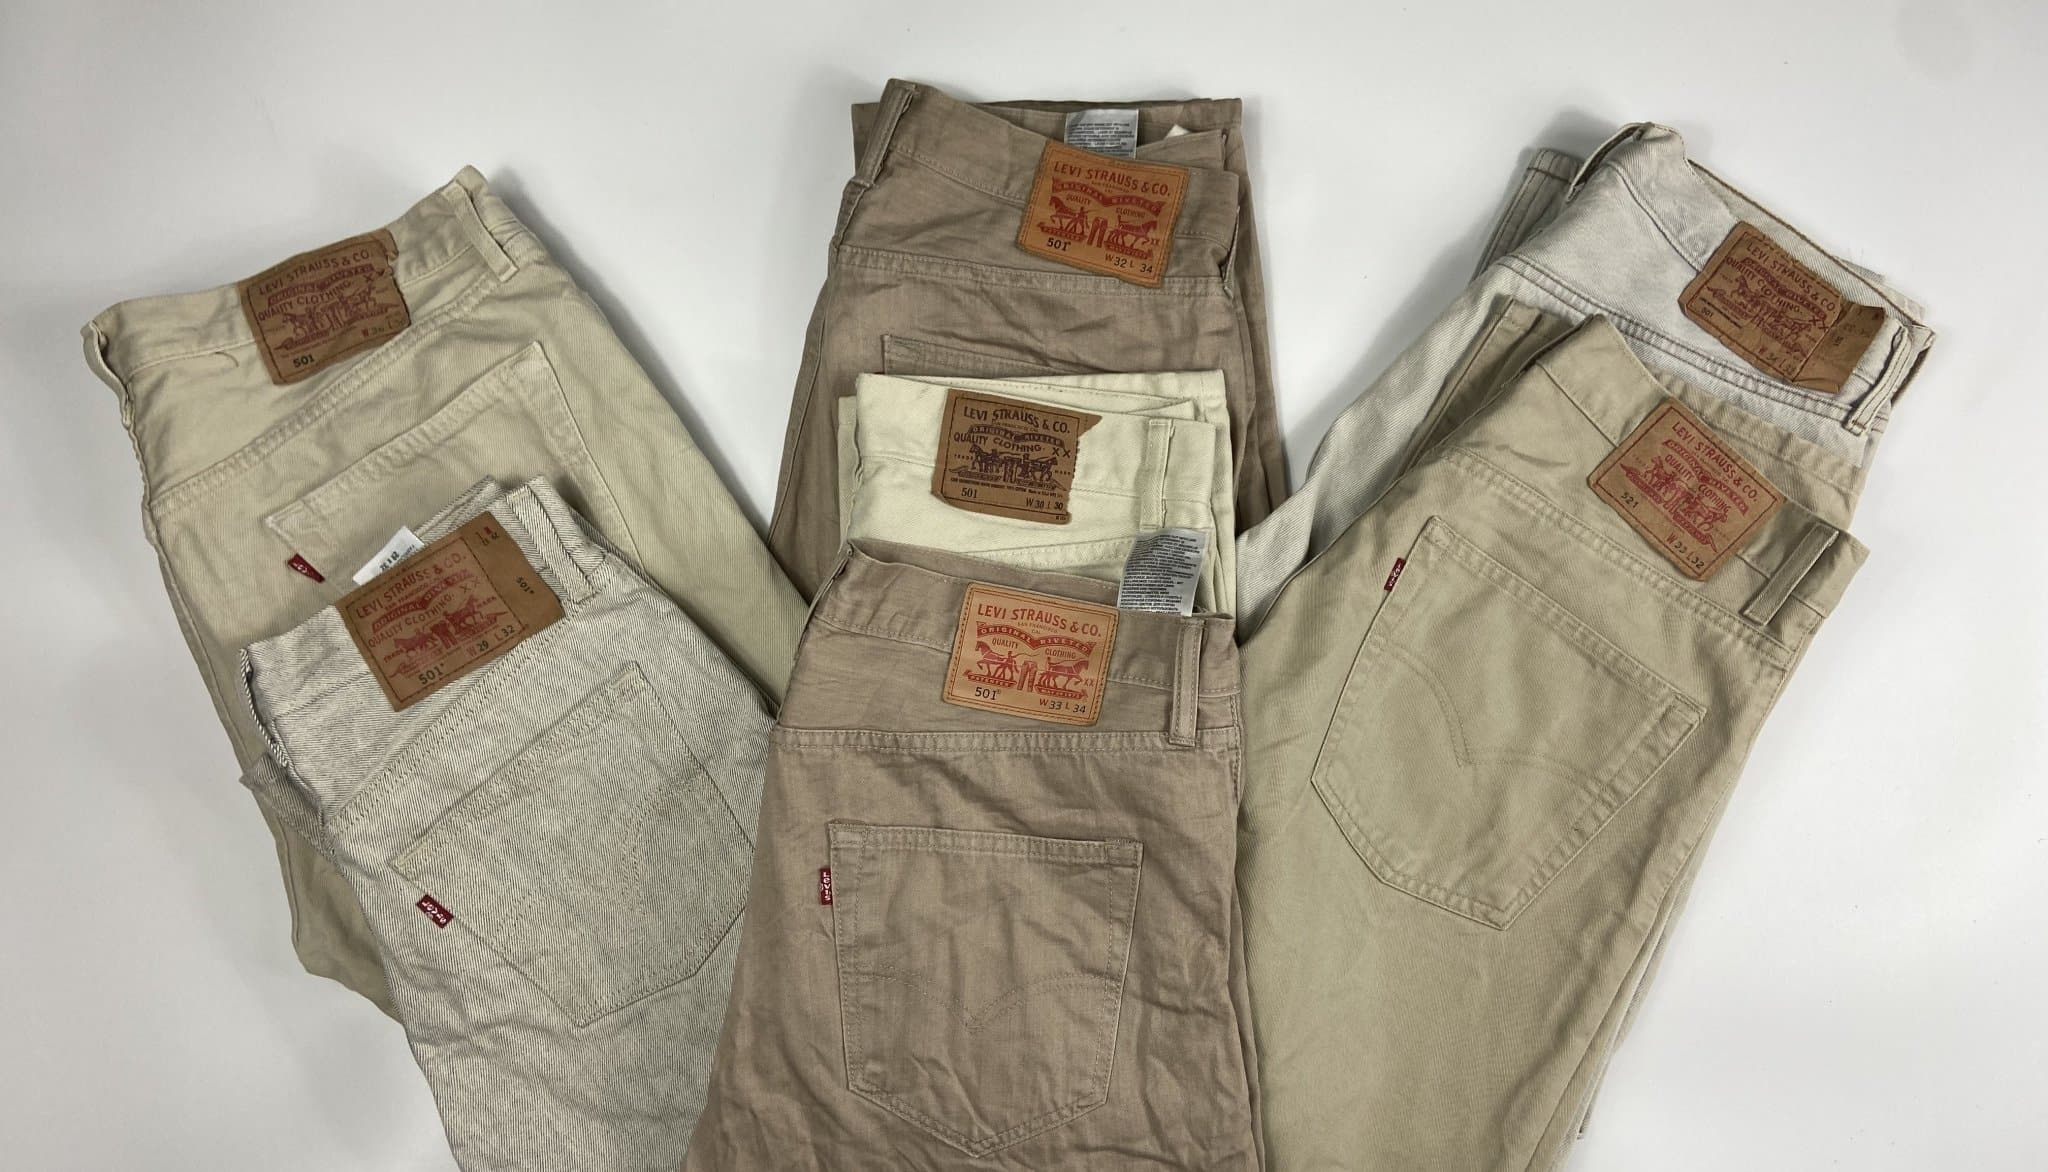 Vintage Levi's Classic Beige/Cream 501 Jeans W36 L36 (BE2) - Discounted Deals UK